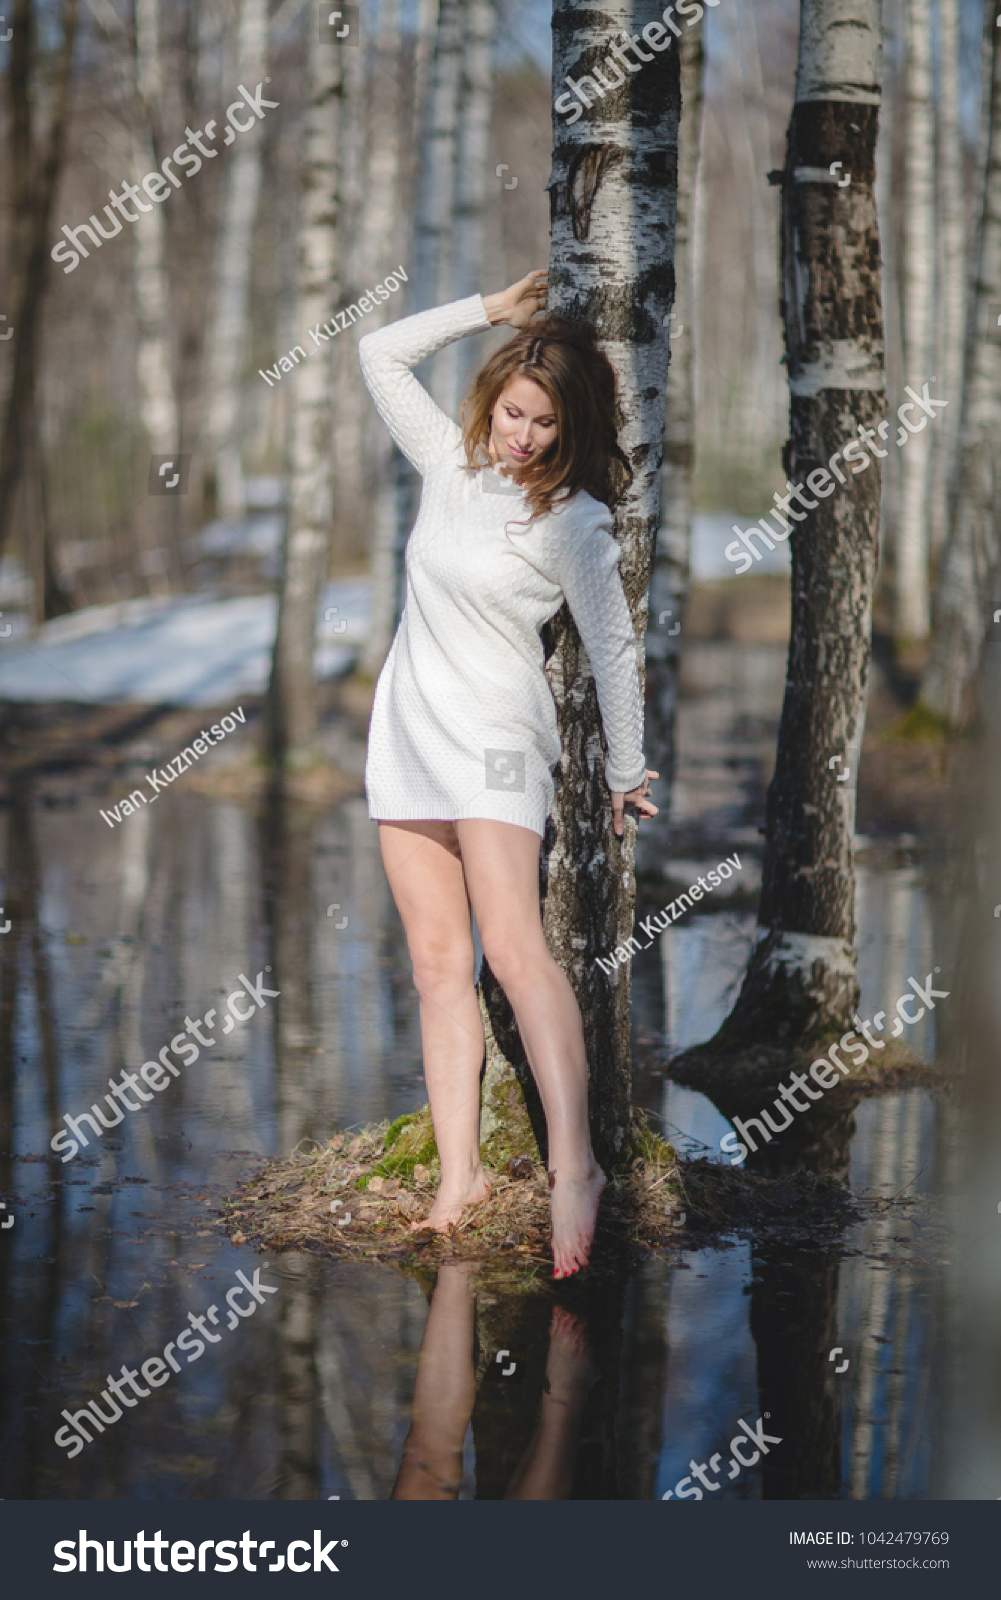 https://image.shutterstock.com/shutterstock/photos/1042479769/display_1500/stock-photo-beautiful-young-russian-girl-with-bare-feet-touching-the-water-with-her-toes-in-the-spring-forest-1042479769.jpg